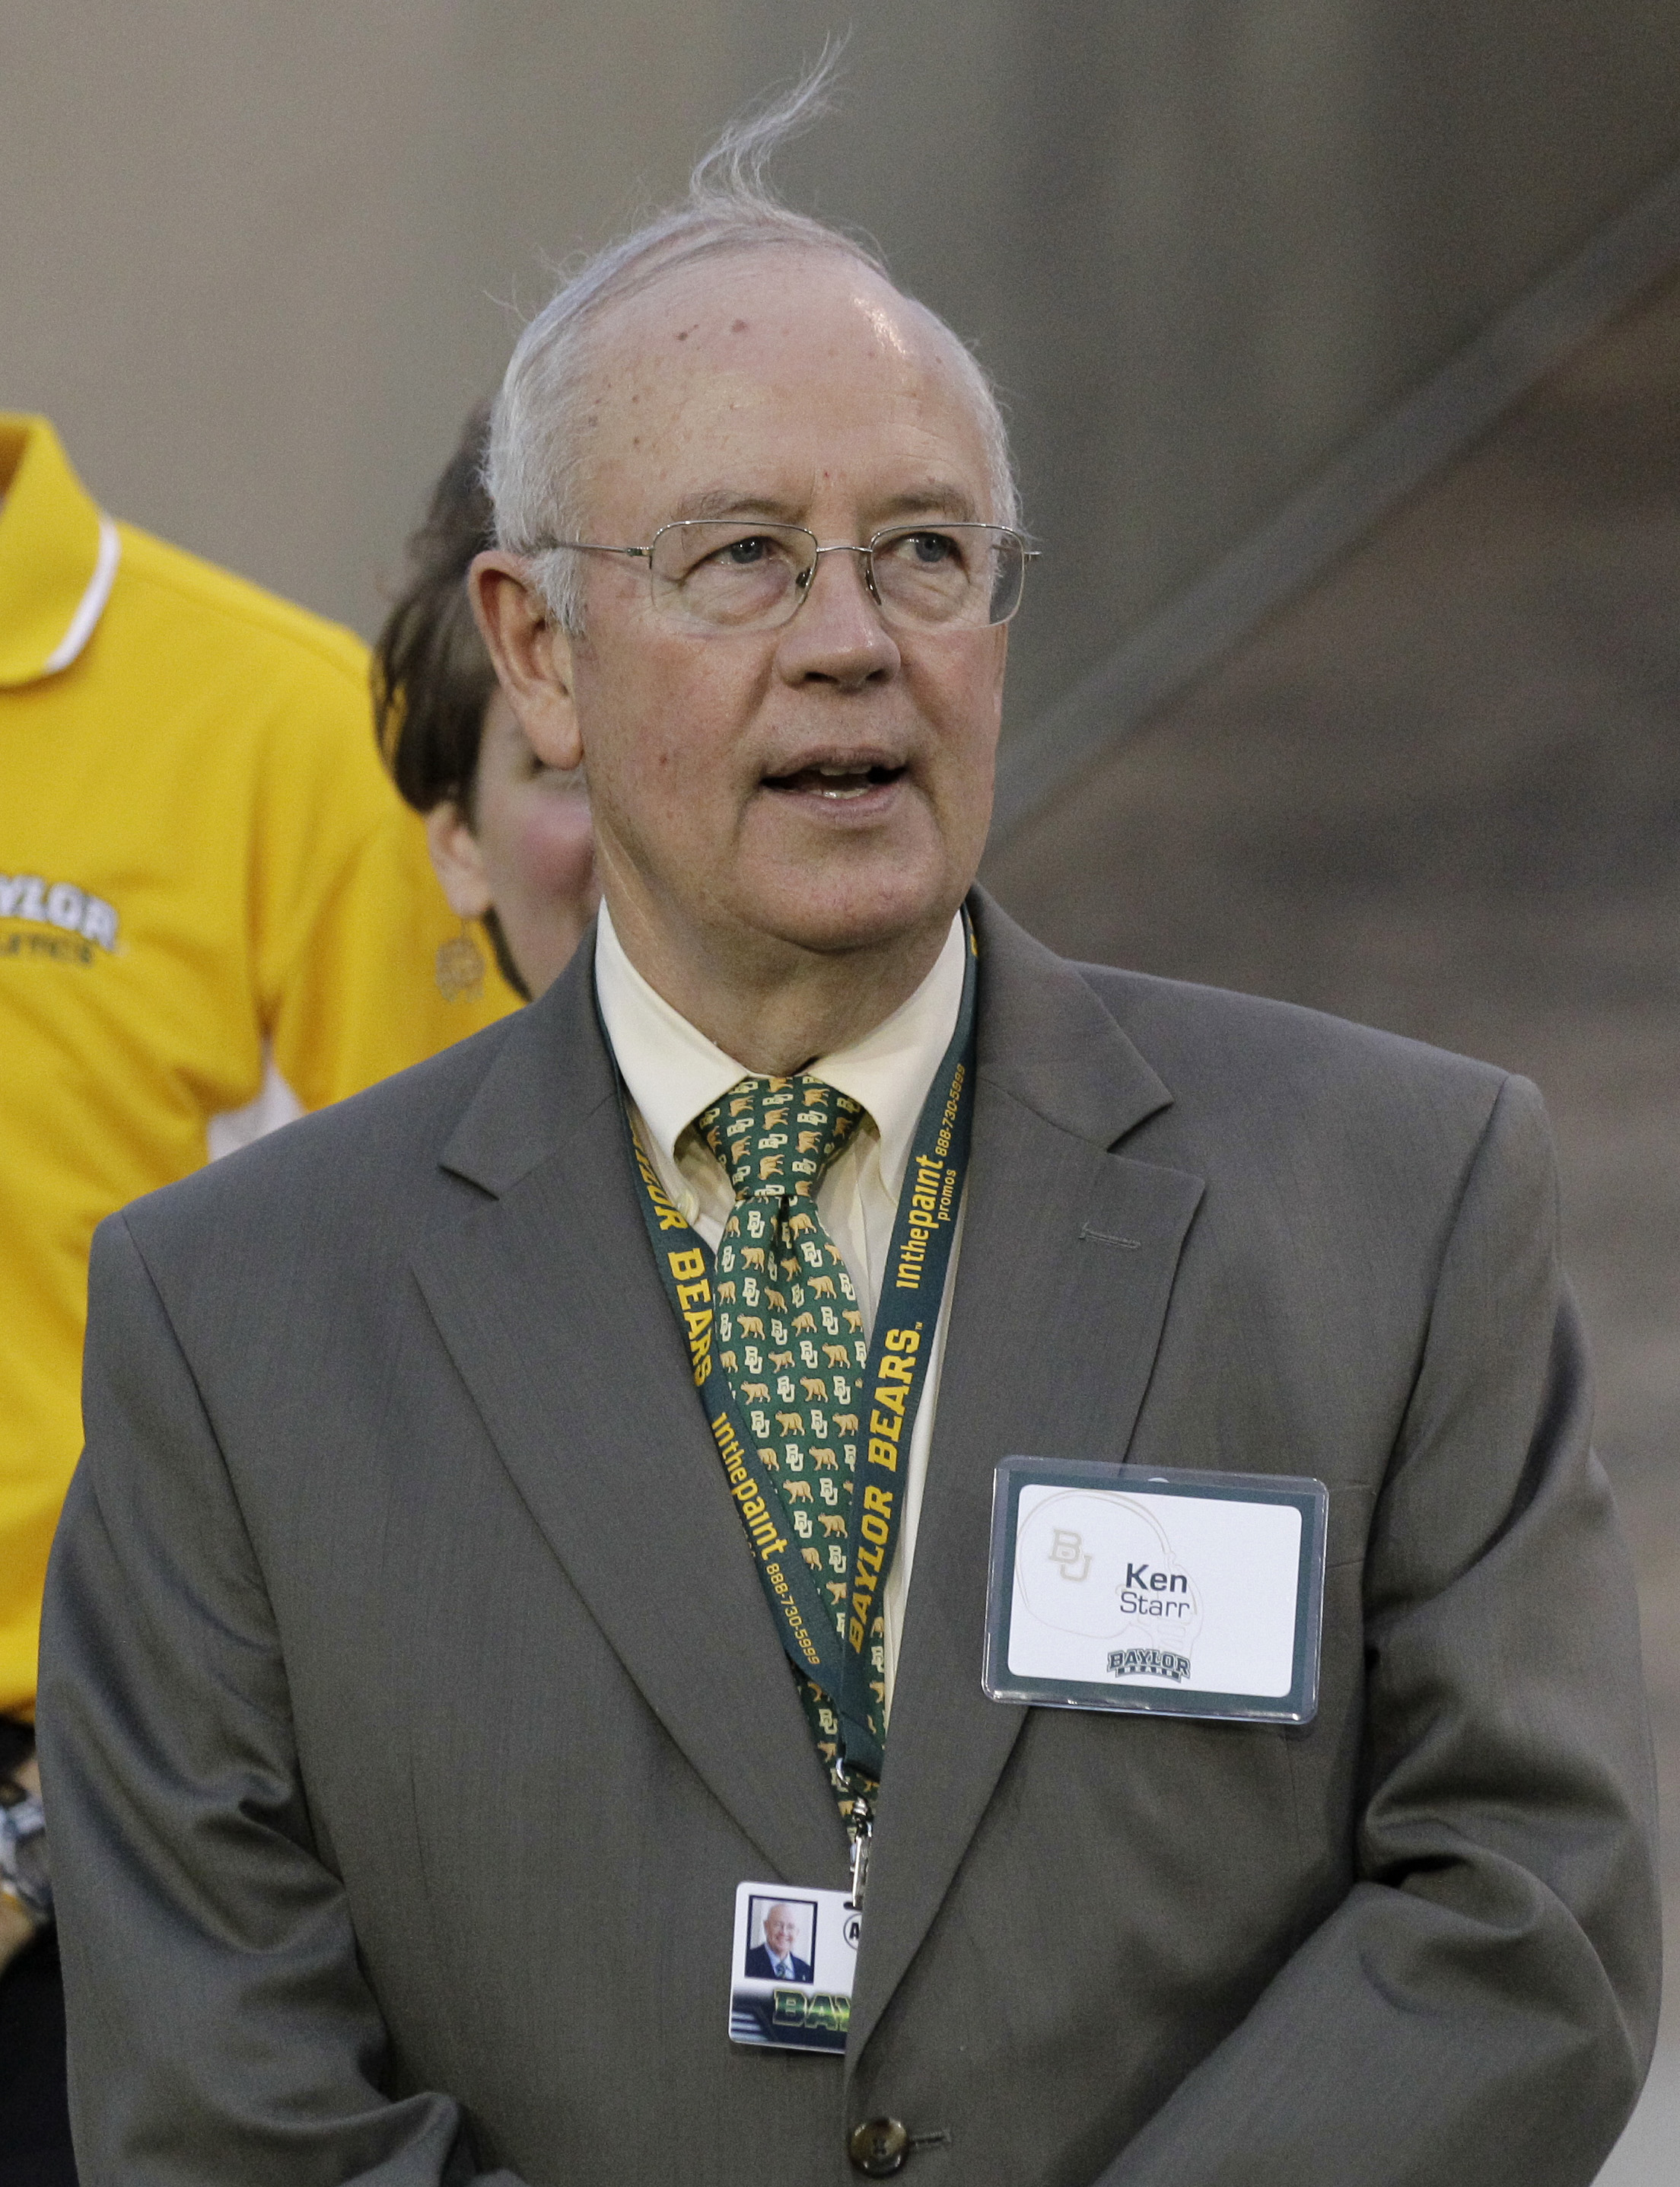 Baylor University President Kenneth Starr during an NCAA college football game against Stephen F. Austin, Saturday, Sept. 17, 2011, in Waco, Texas. Baylor won 48-0. (AP Photo/Tony Gutierrez)